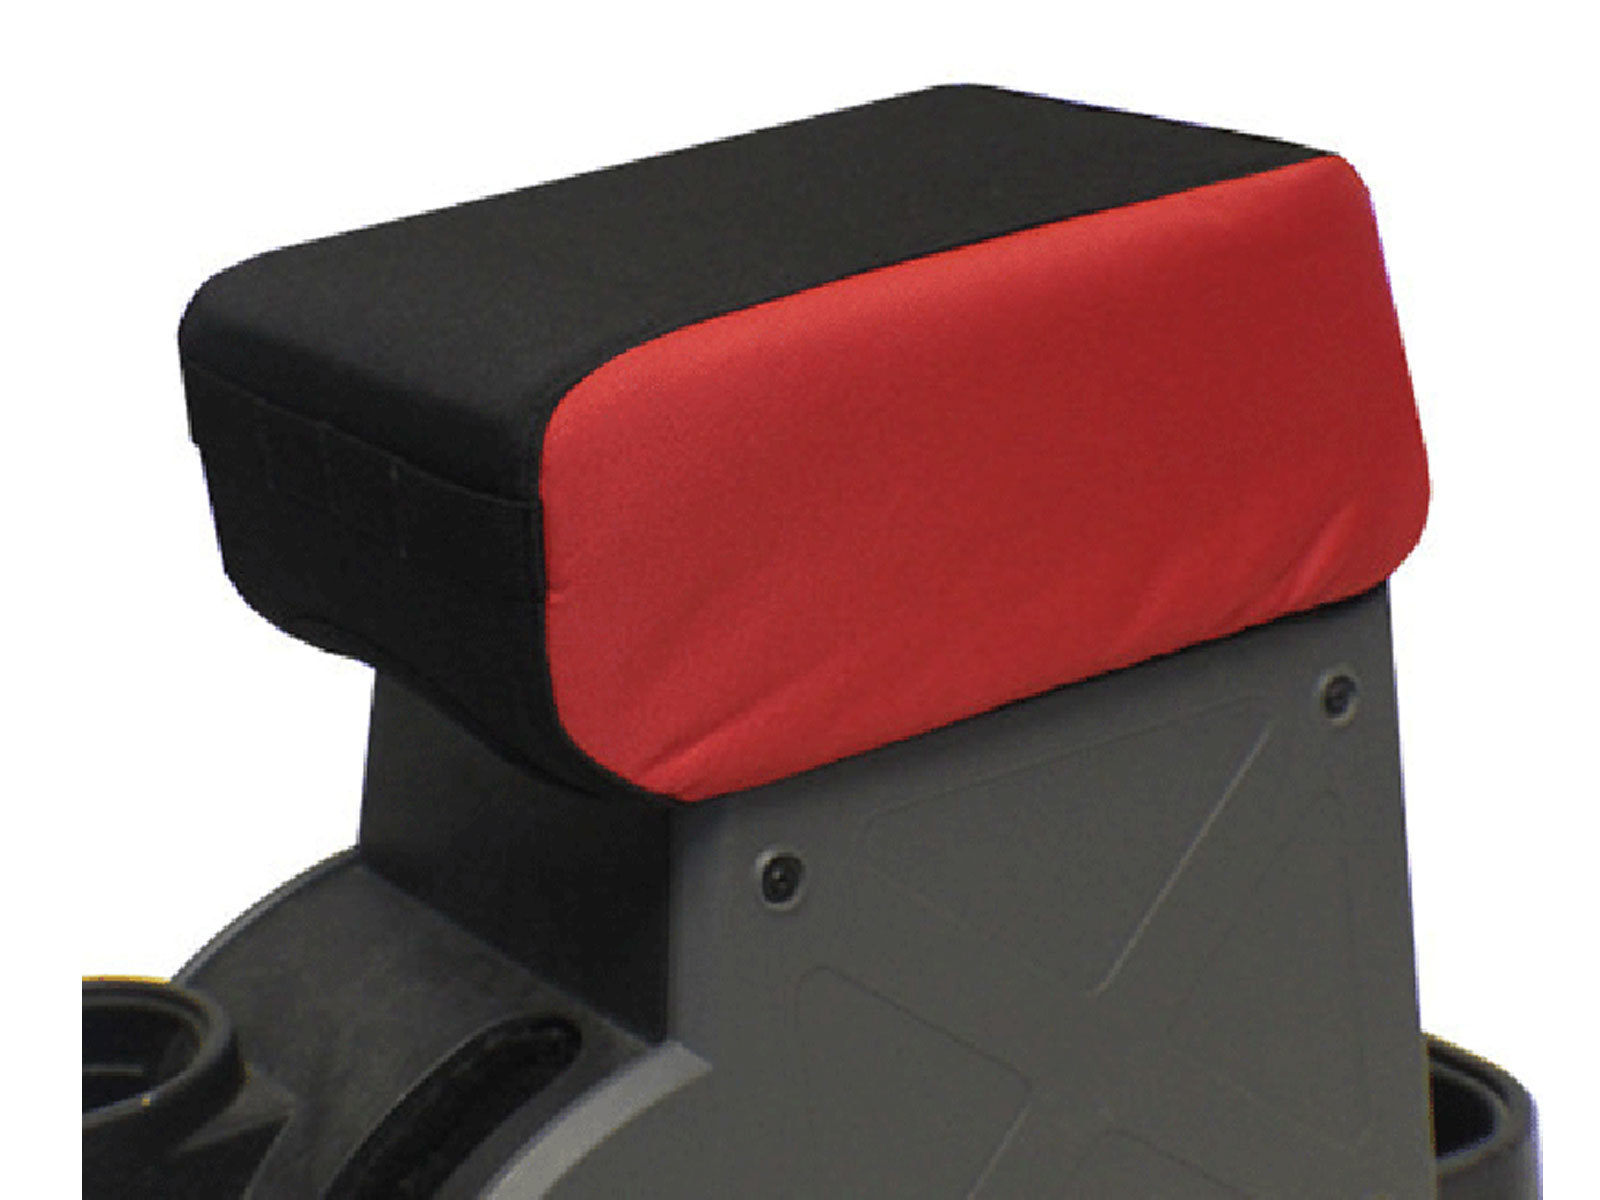 """Image of Bartact 2"""" Raised Padded Center Console Cover With Pals Webbing For Molle Attachments - Red/black"""